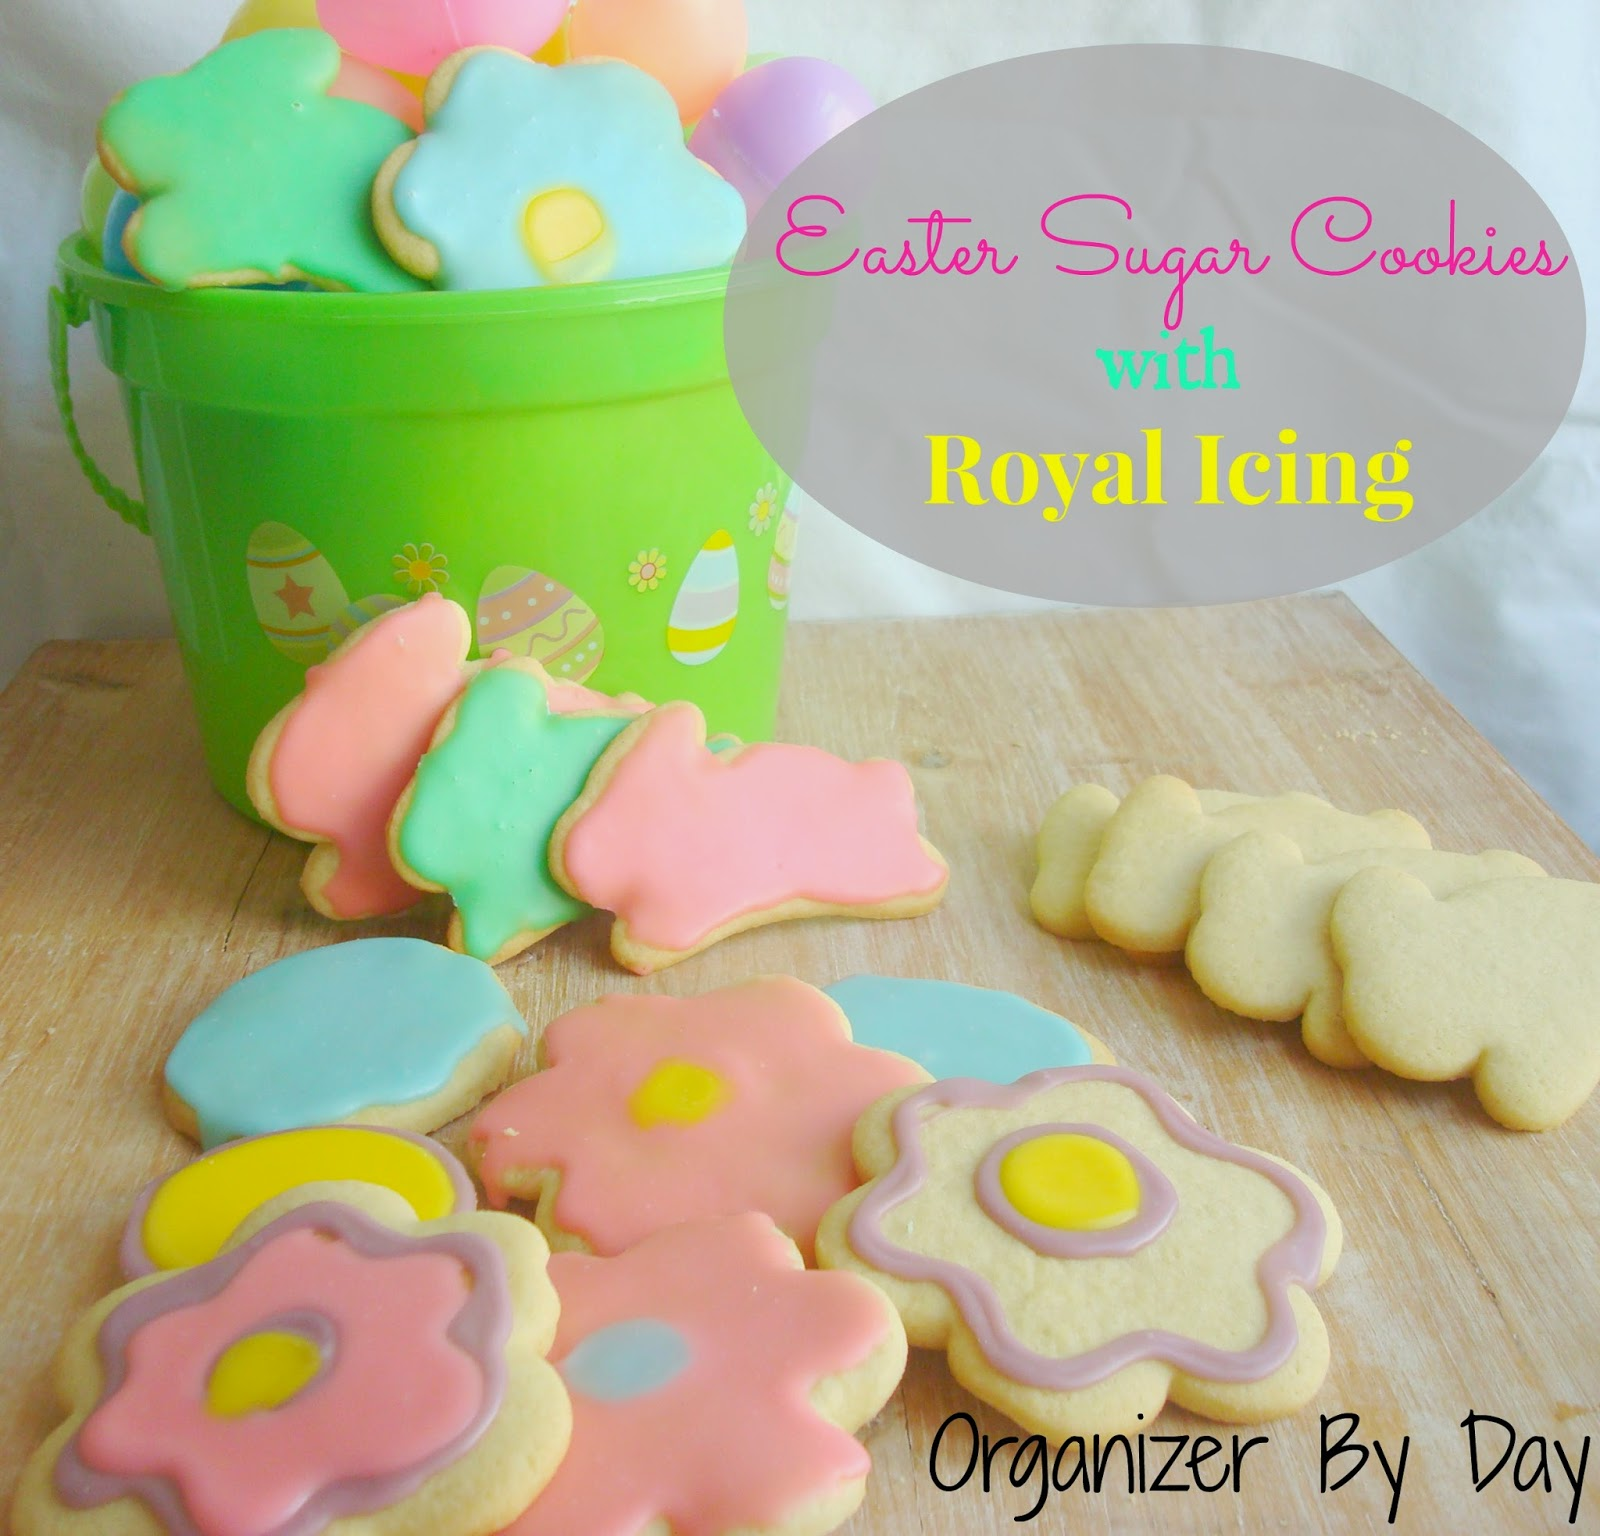 ... Crockpots! Come Check It Out!: Easter Sugar Cookies with Royal Icing